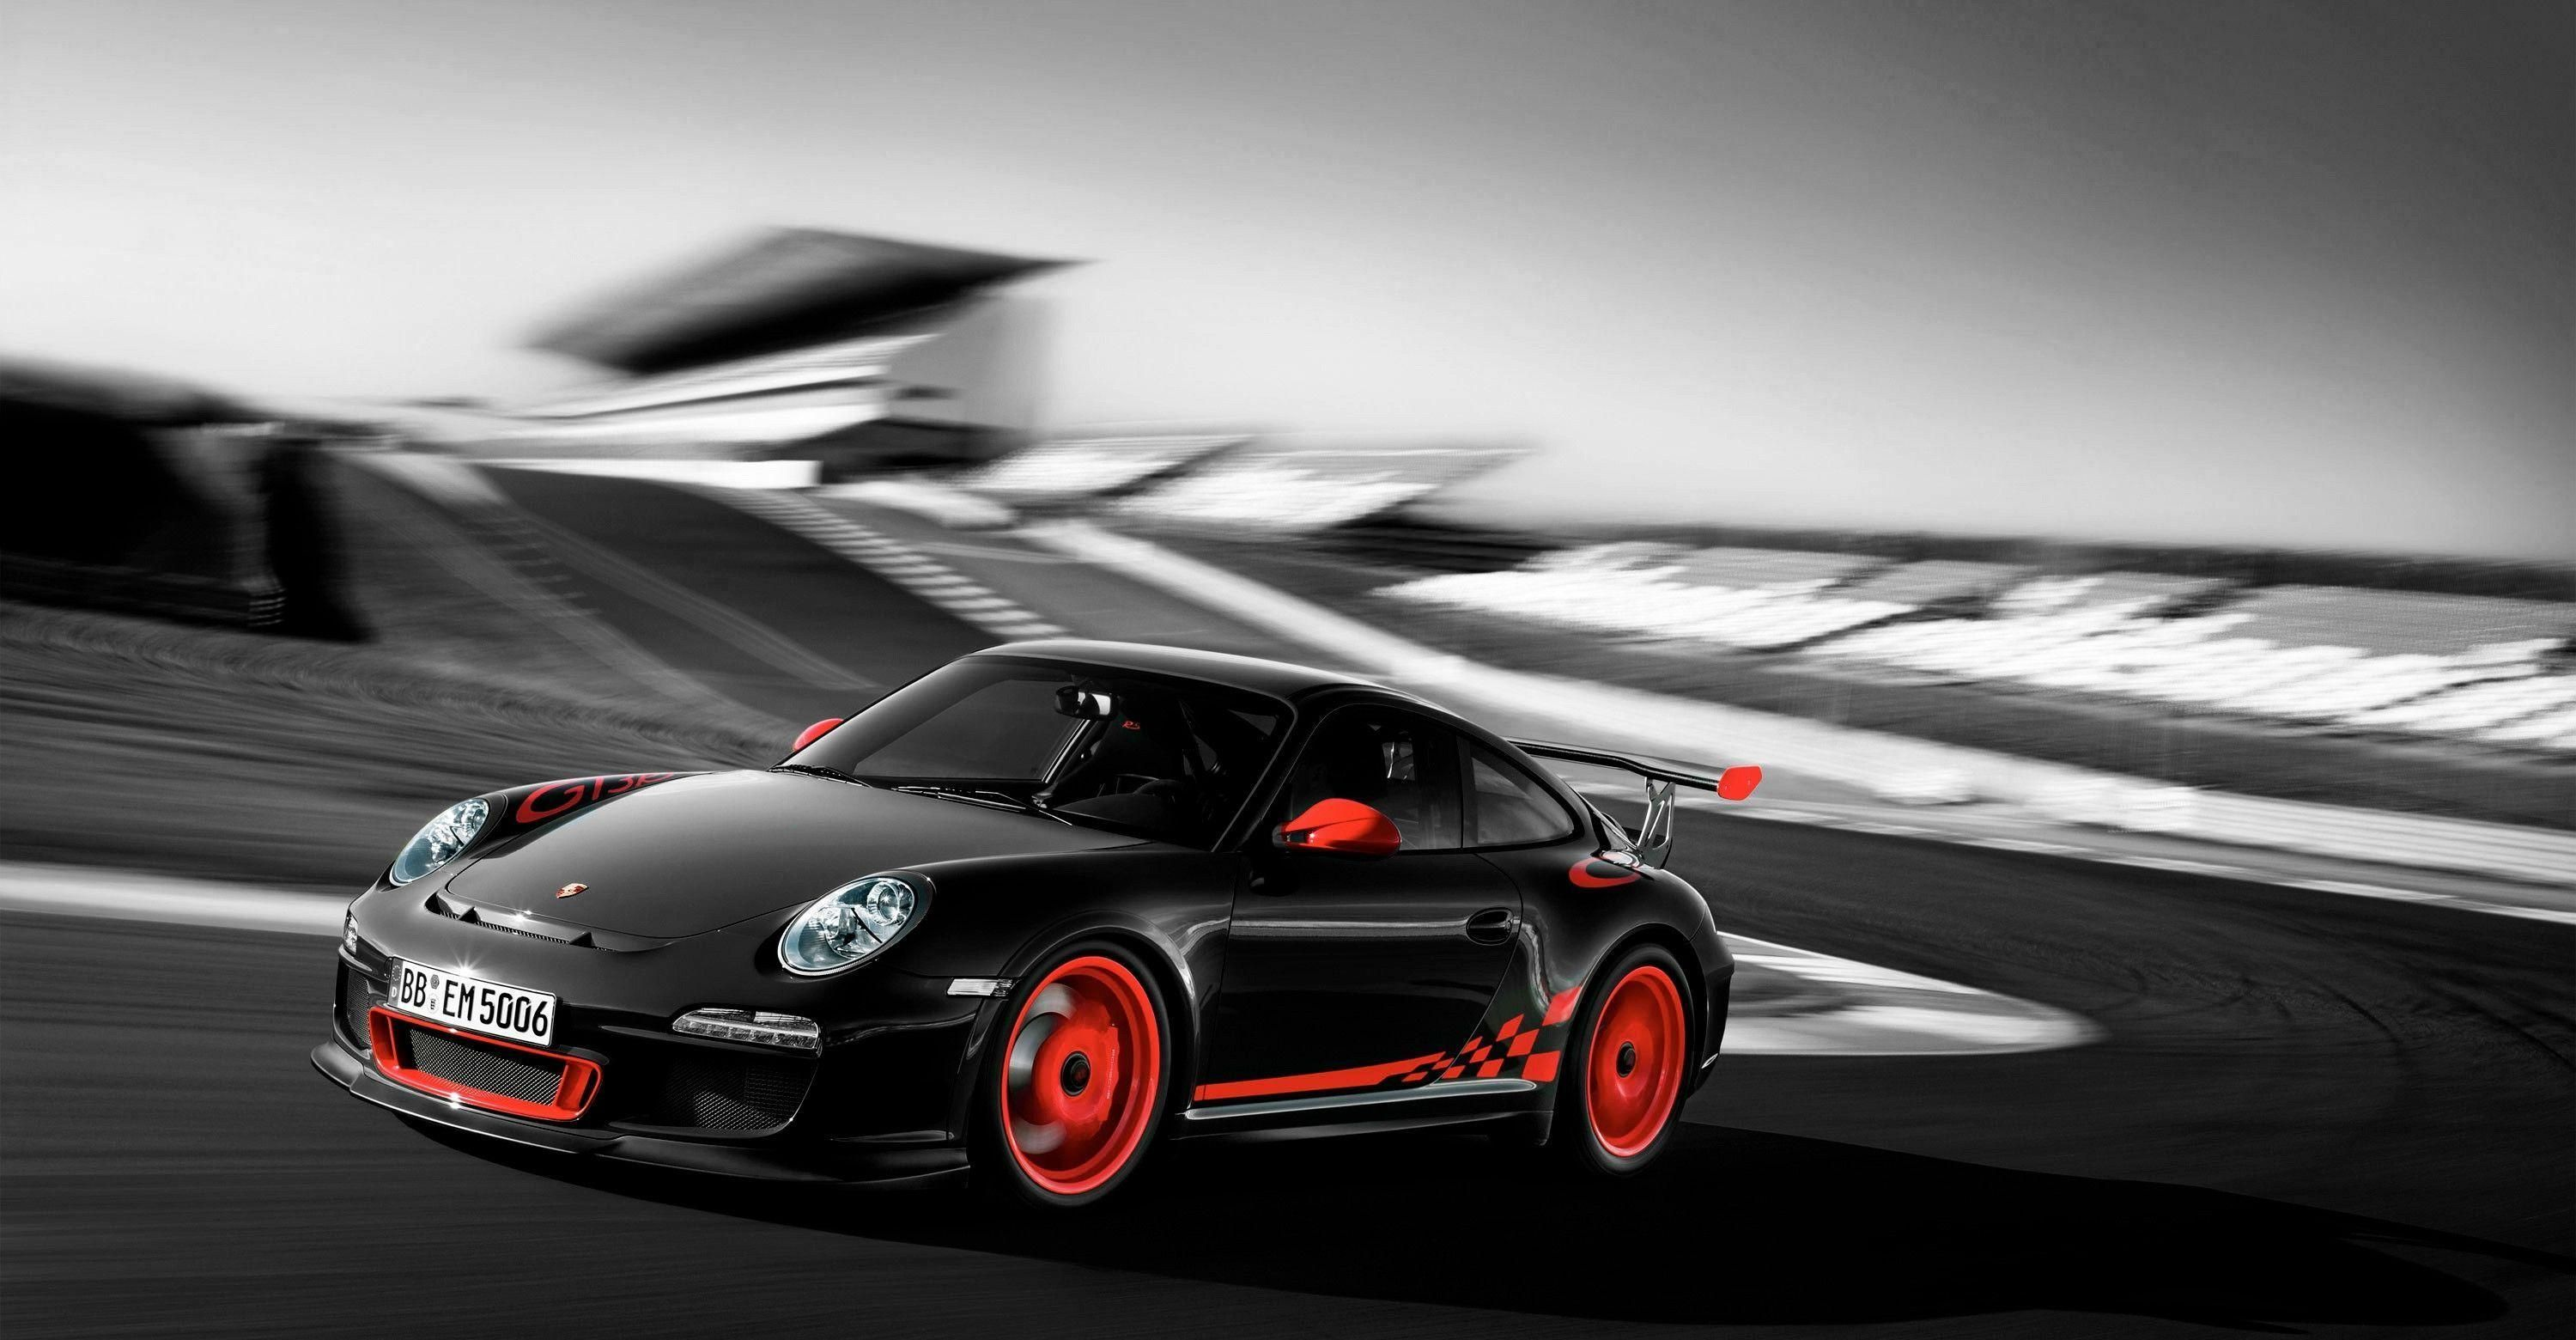 Porsche Car Full Hd Wallpapers Free Download 49 Car Wallpaper For Mobile Sports Car Wallpaper Car Wallpapers